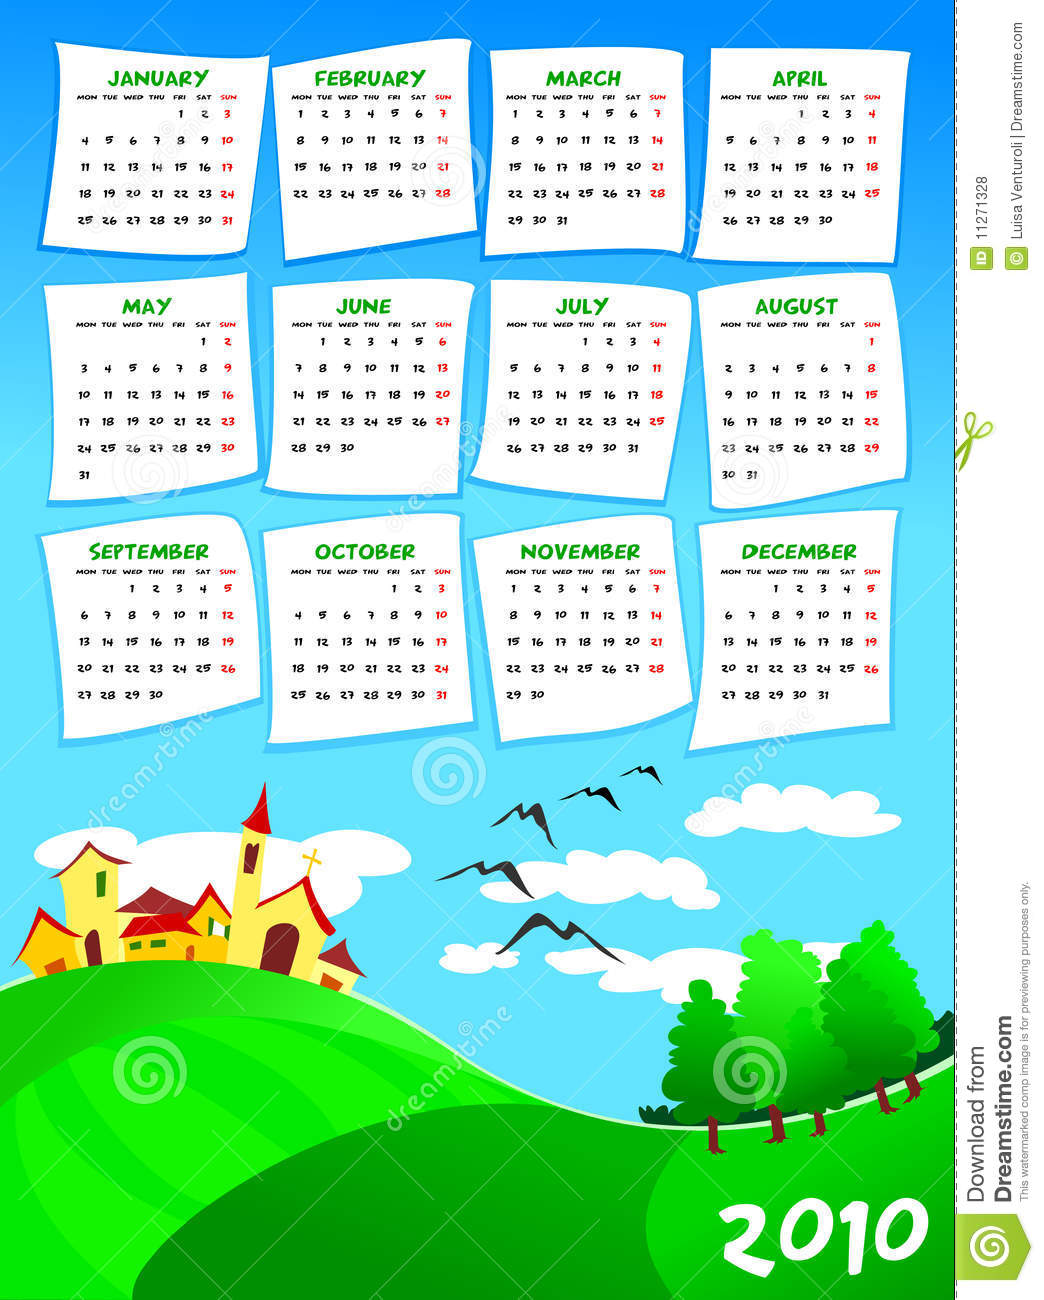 Next Year Calendar : Calendar of next year royalty free stock photos image